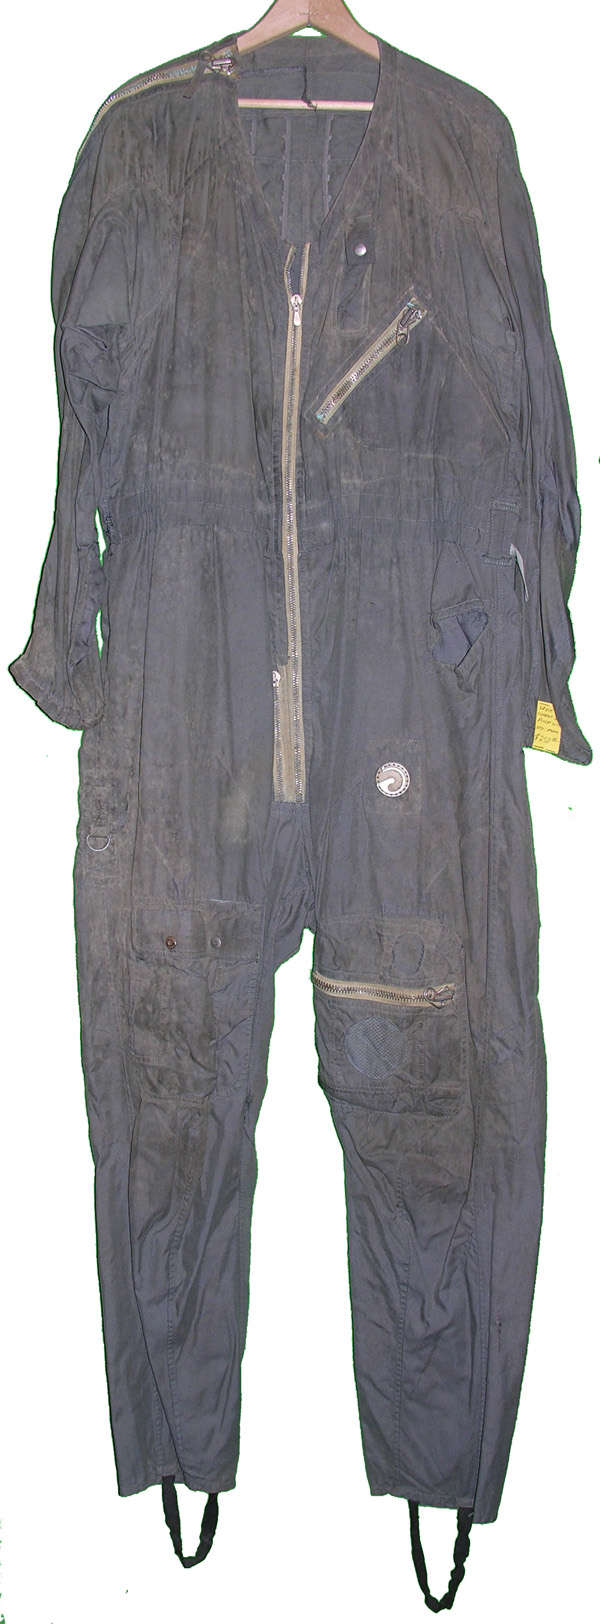 Soviet Flight Suit